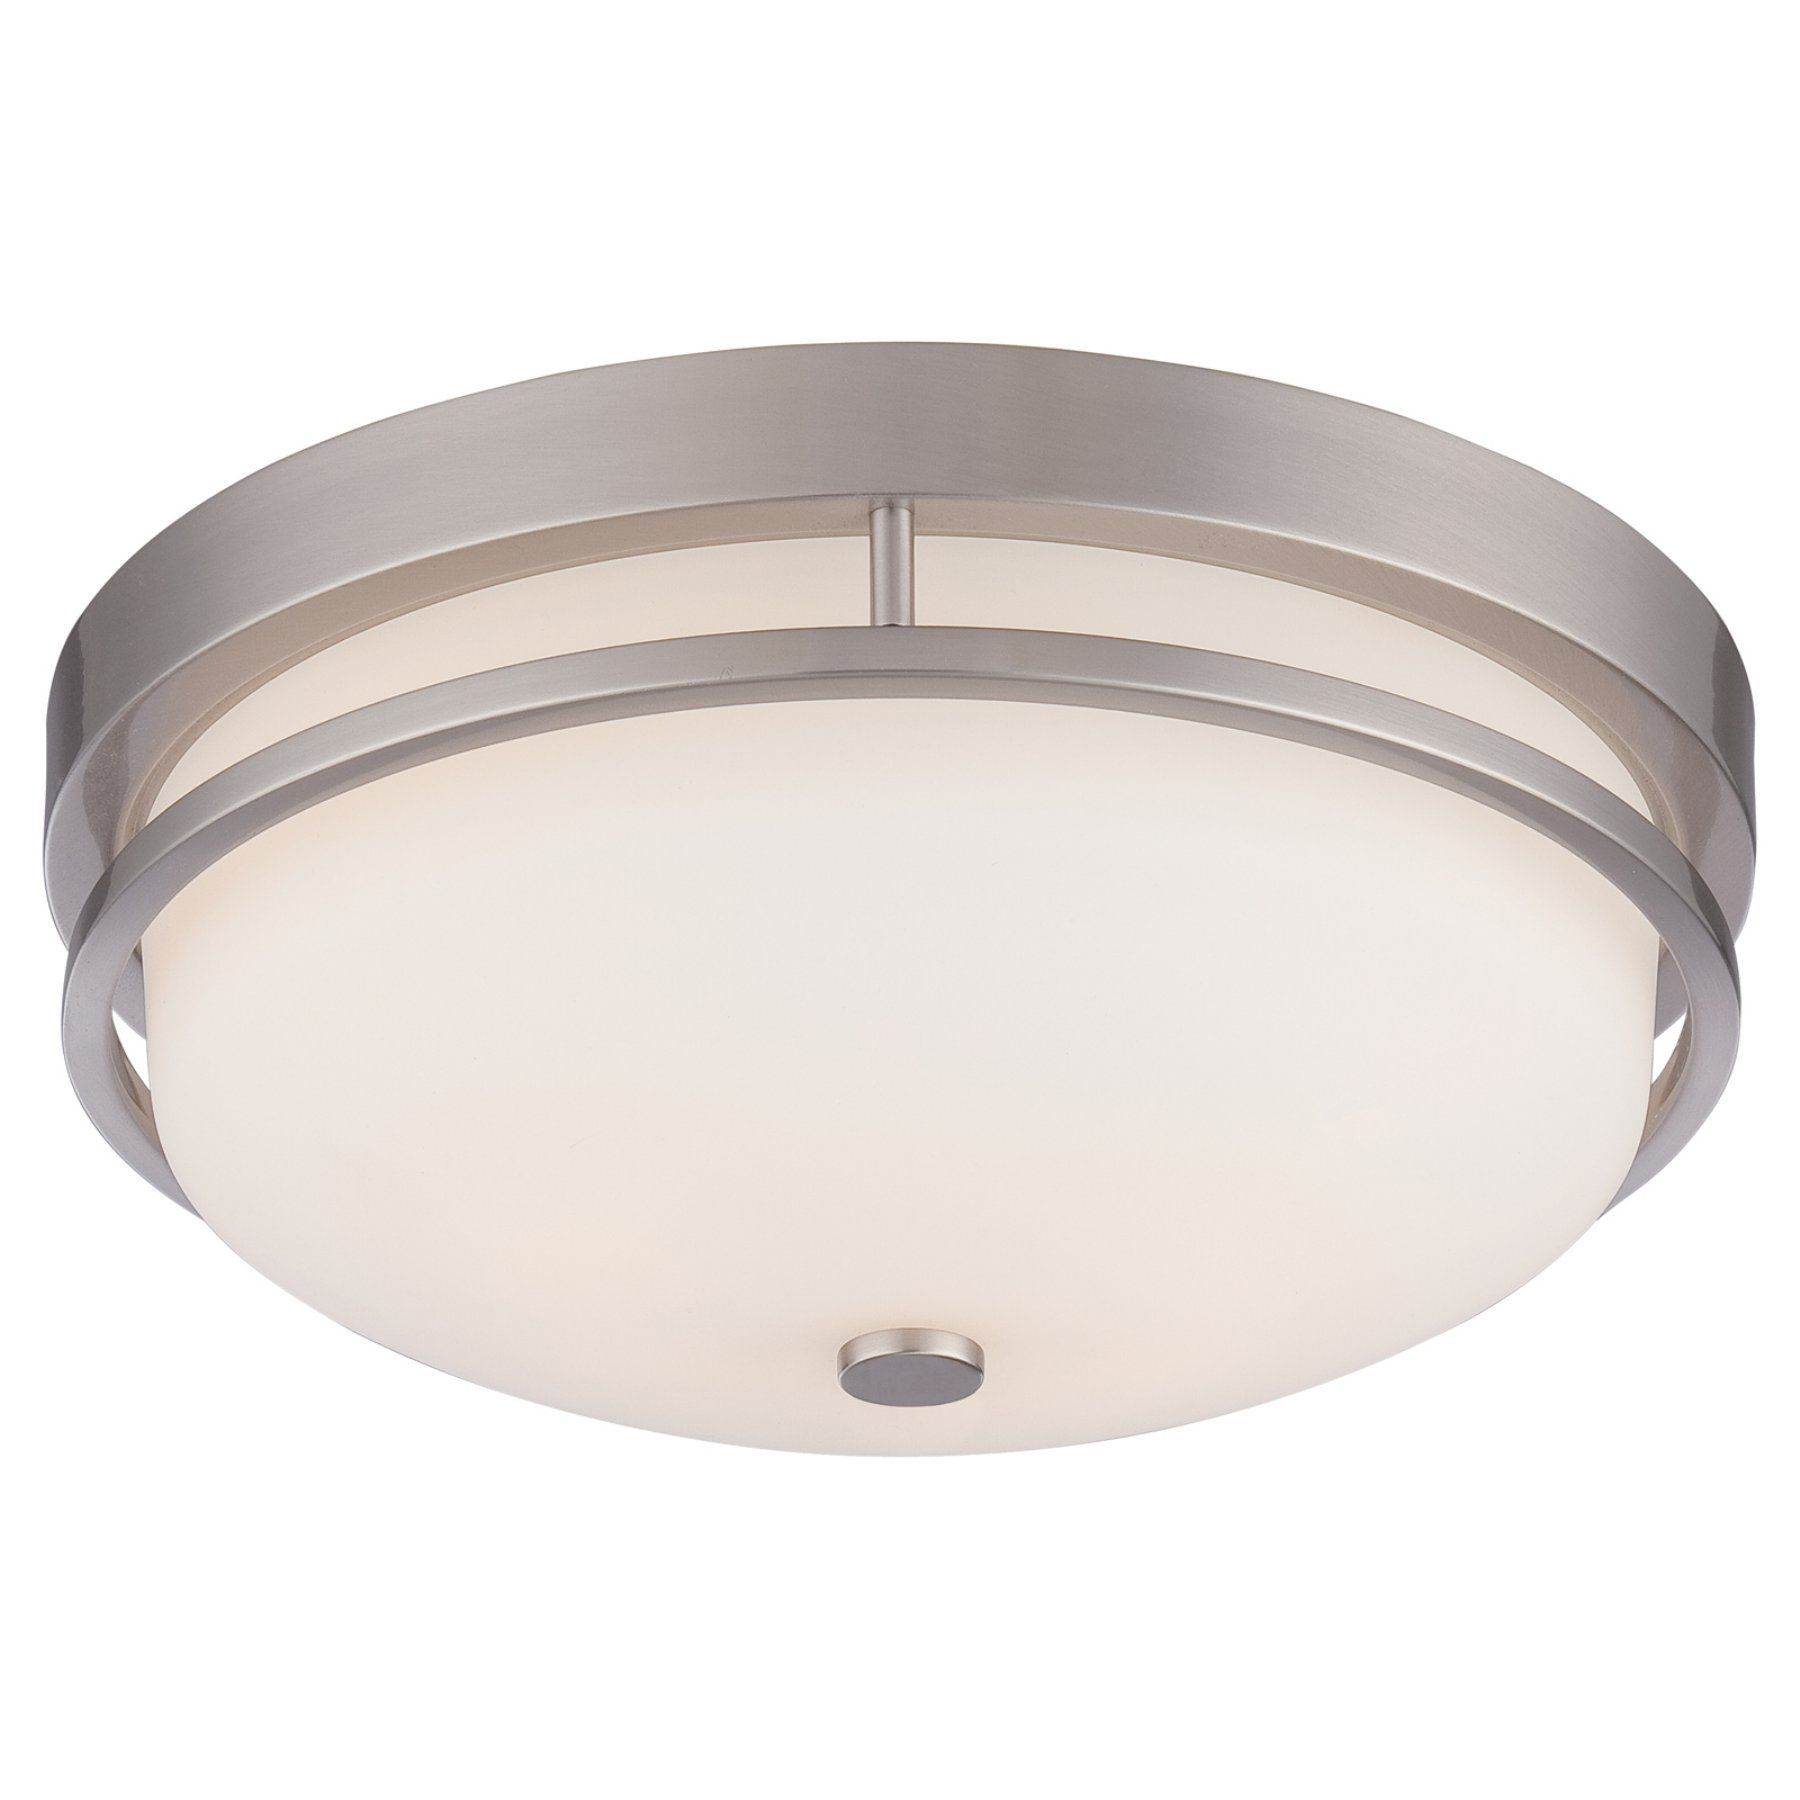 new ideas for ceilings idea light use shop lowes remodel lights to ways lighting at lumens com elegant flush mount regarding flushmounts ceiling